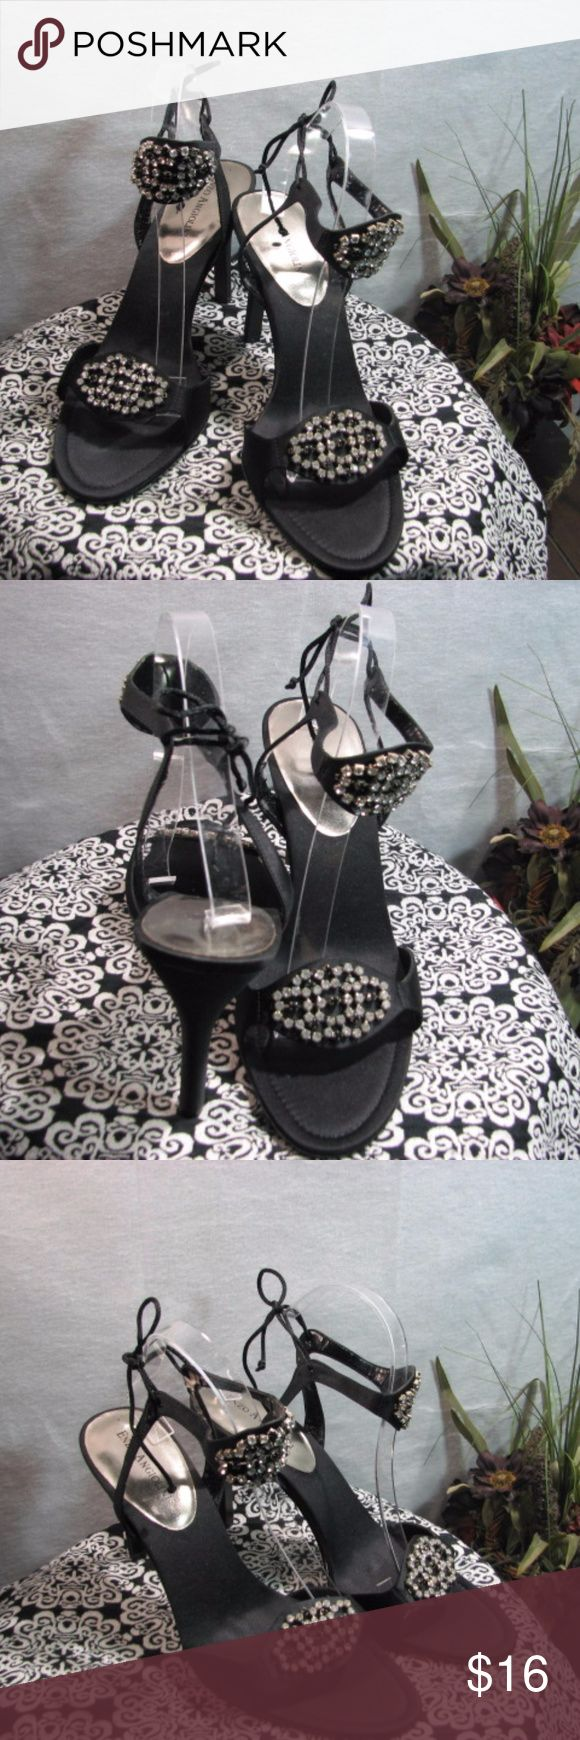 ENZO ANGIOLINI Designer Shoes/Sandals Beautiful Jeweled-Rhinestone Shoes/Sandals Black Open-Toe/Rhinestone across the bridge and ankle of the shoe Lace back closure 3-1/2 inch heels Gently used/ Some wear on the inside of both traps ***PLEASE SEE ALL PICTURES ENZO ANGIOLINI Shoes Heels